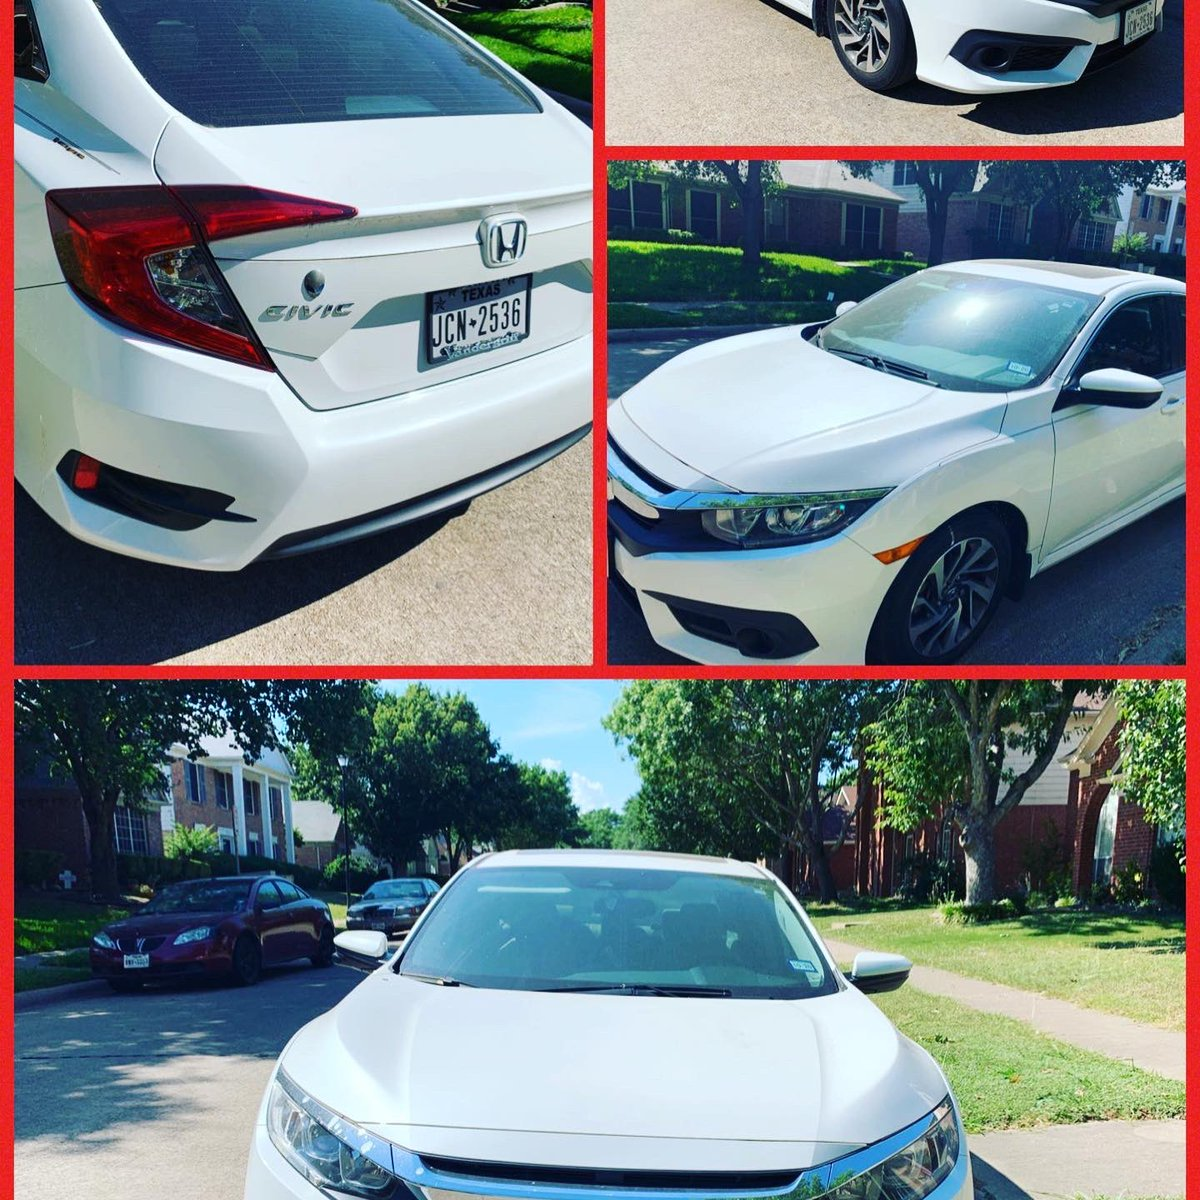 Selling 2016 Honda Civic- Excellent condition. No issues- International relocation-can't take car. Blue Book $13,000 but selling for $11,500. PM me if interested. Dallas/Cedar Hill, TX. pic.twitter.com/MtQxfAM3Ea